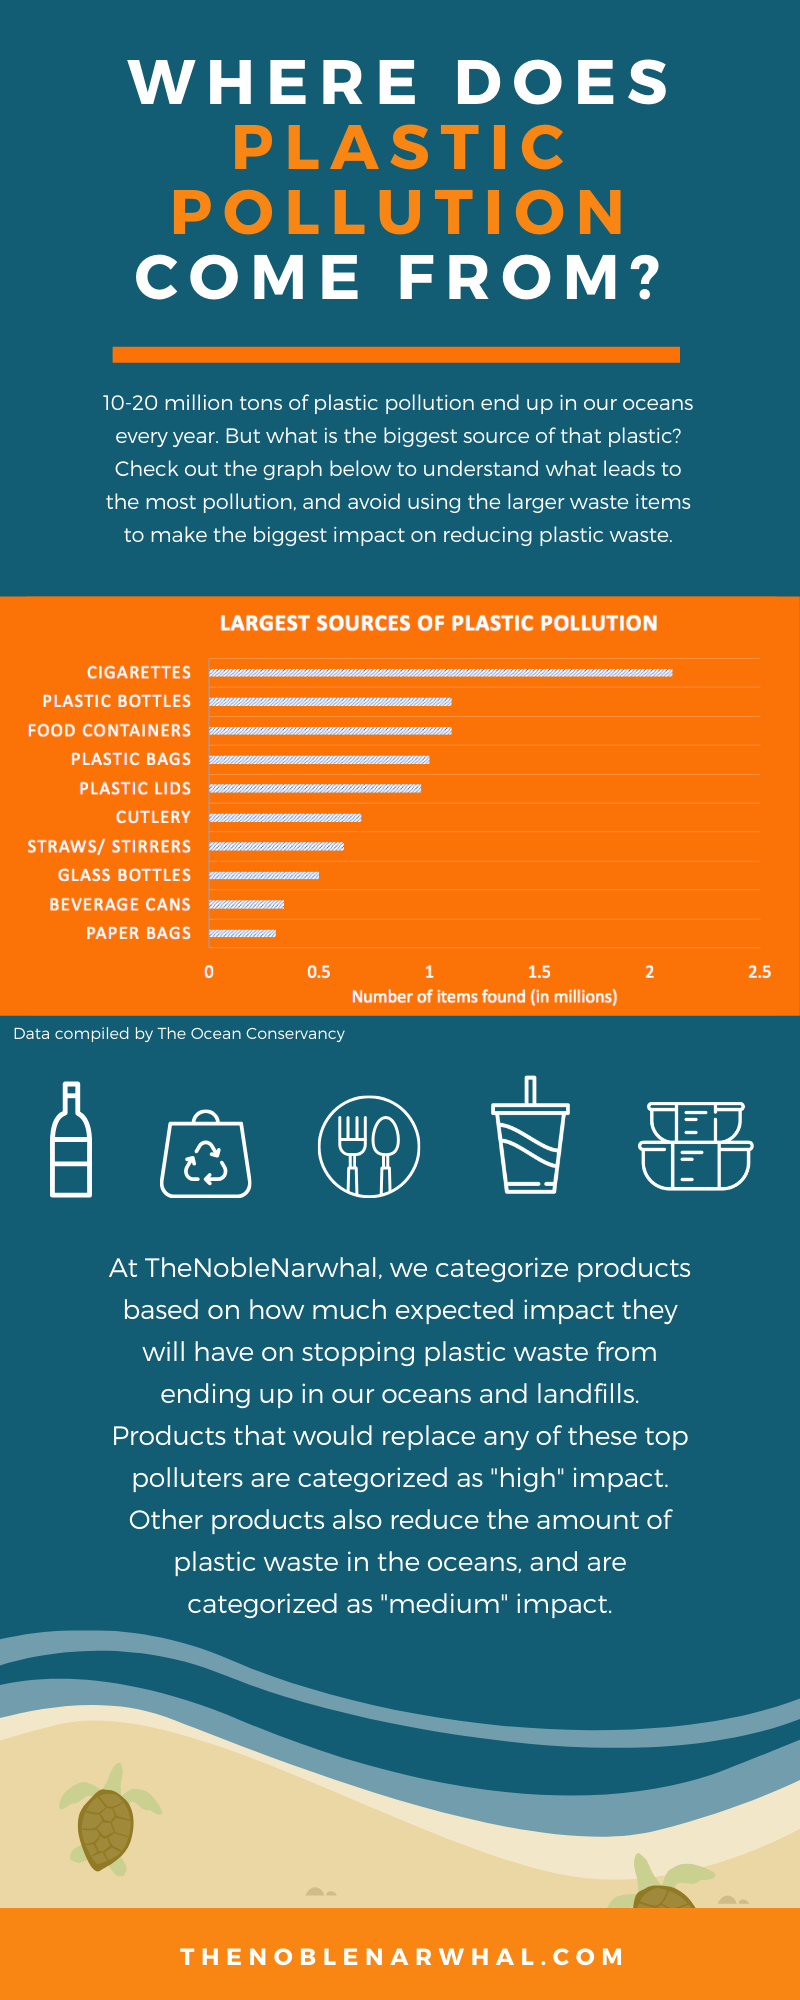 Where does Plastic Pollution Come From?